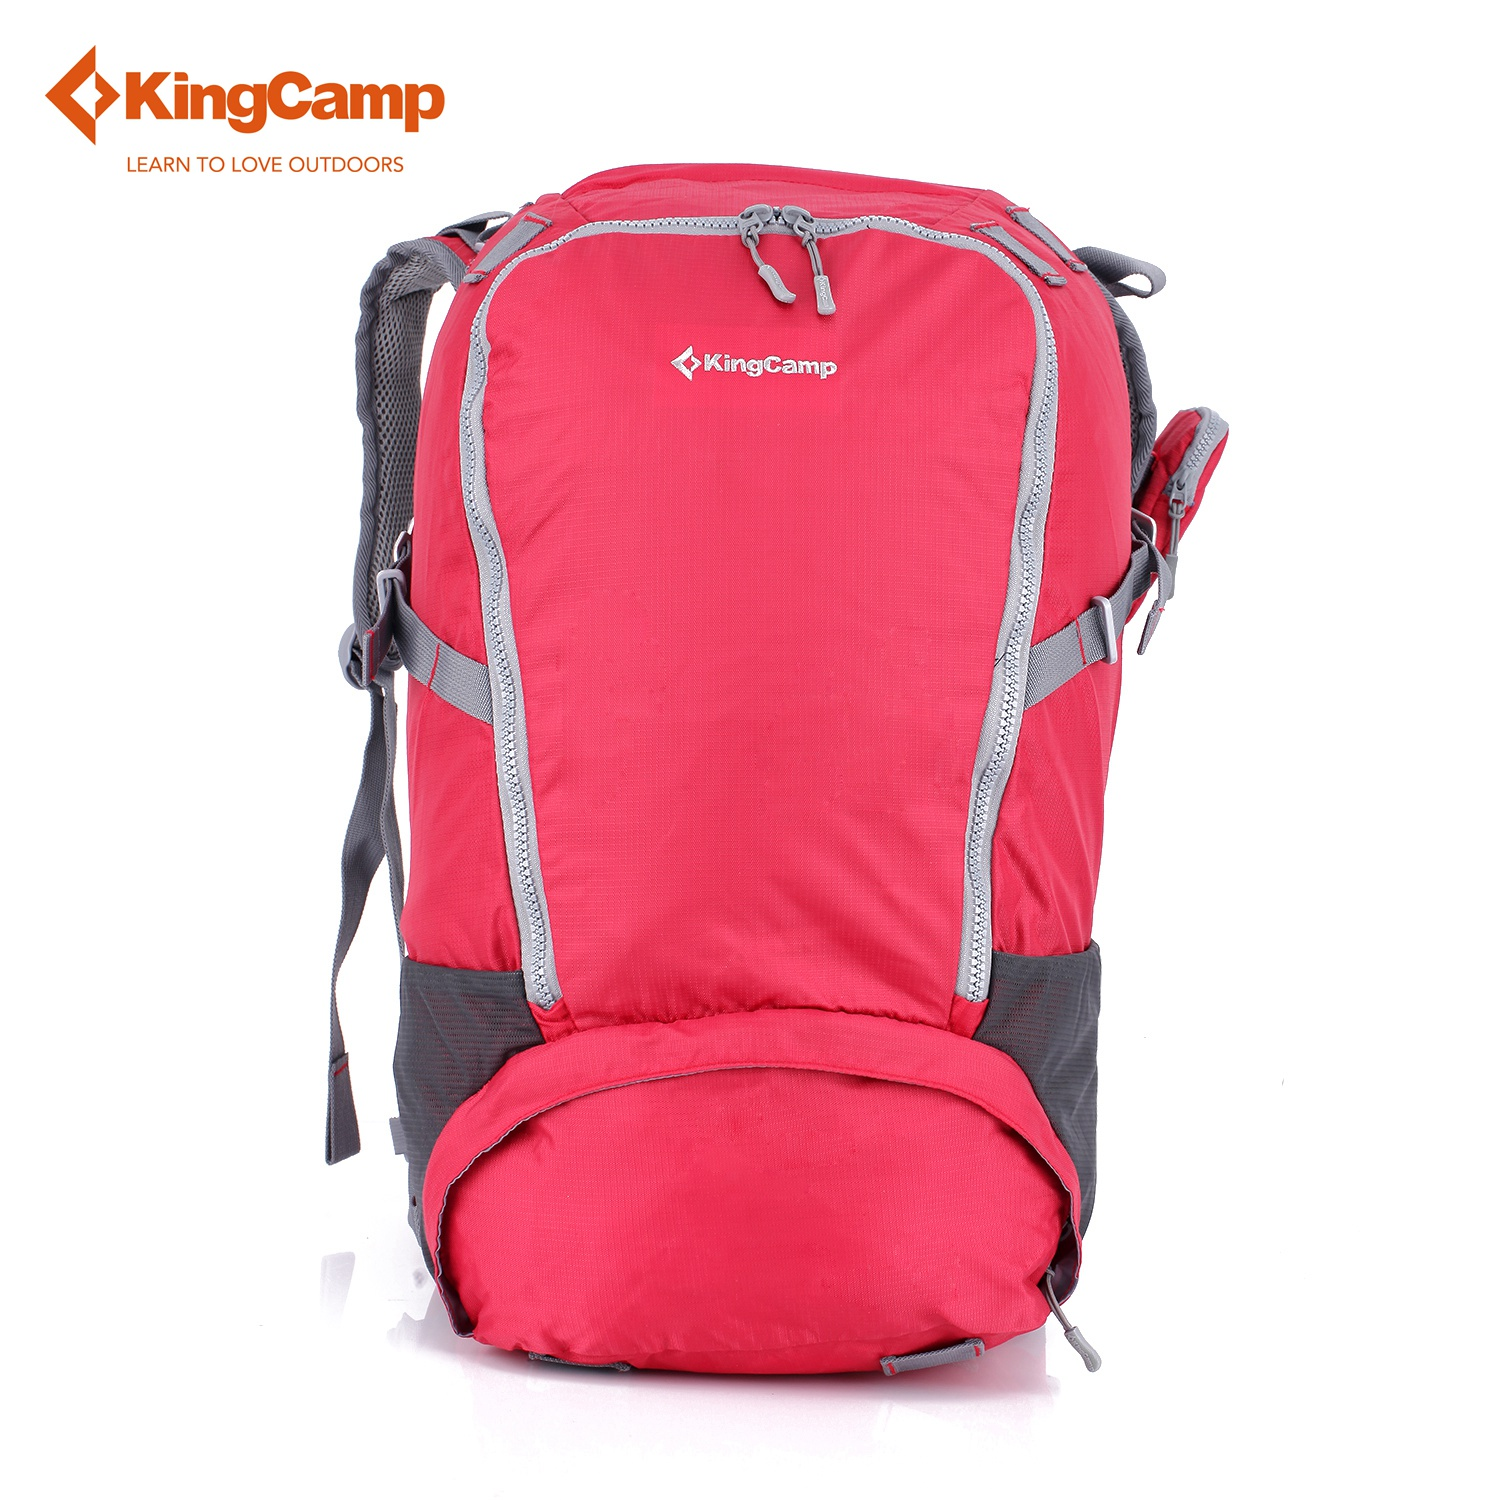 KingCamp ANDROS 50L Outdoor Hiking Climbing Travelling Backpack Waterproof Sport Bag Outdoor huwaijianfeng 50l outdoor sport traveling climbing backpack multifunctional hiking bag